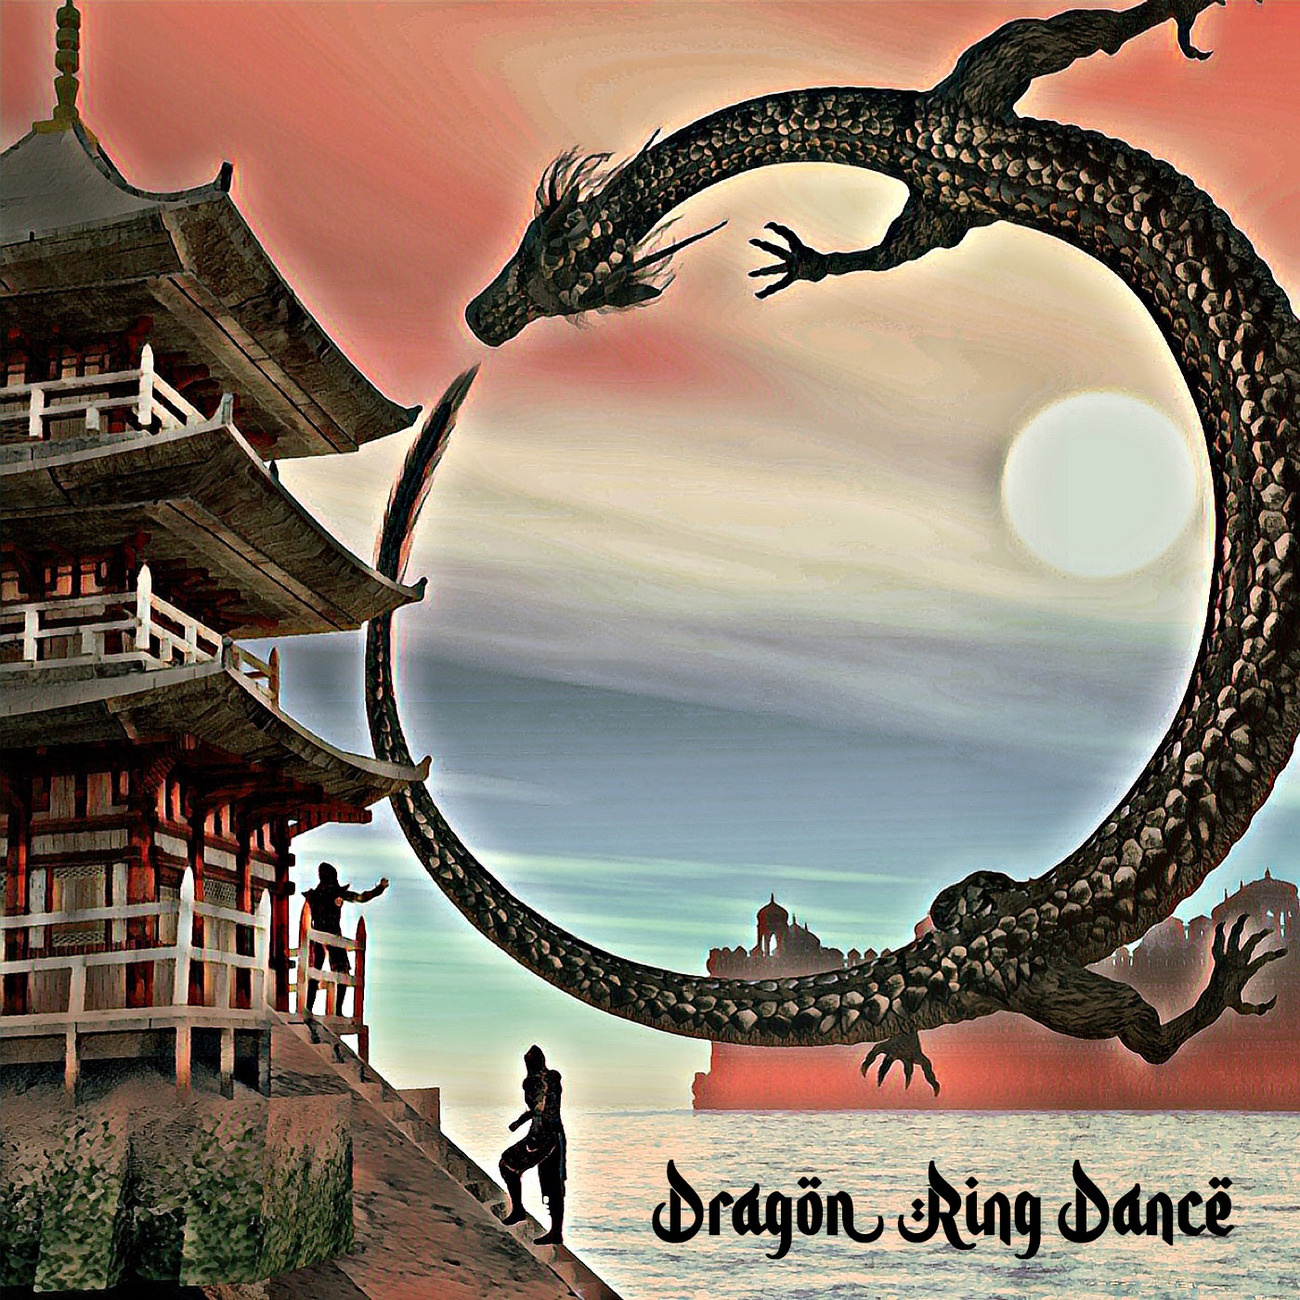 Dragon Ring Dance by rps53